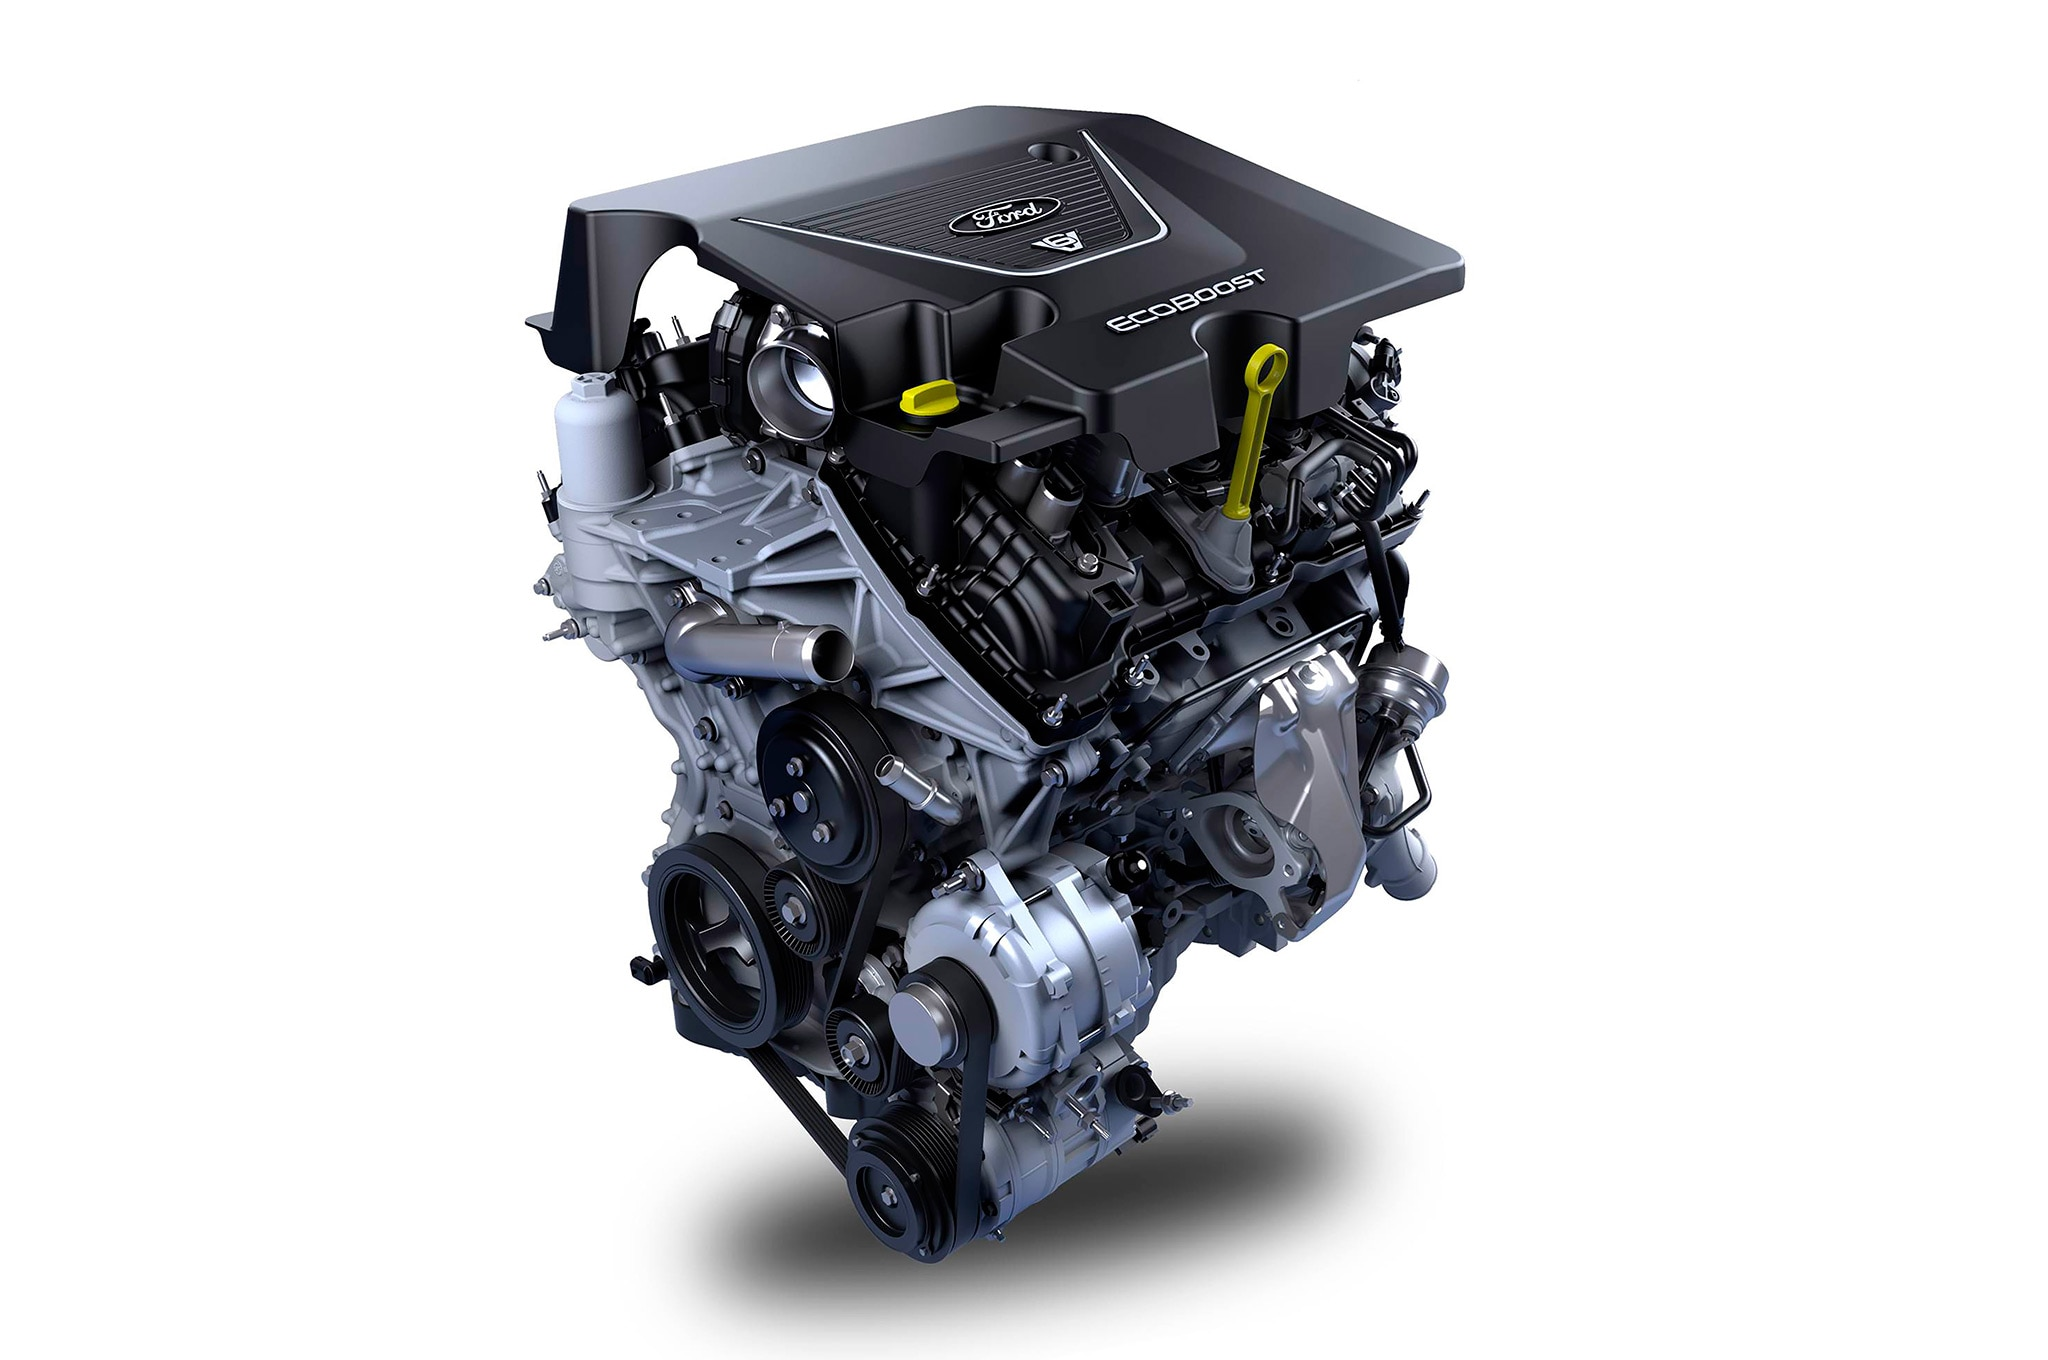 2017 Ford Fusion Sport 2 7 Liter Ecoboost Engine 6 Octubre 2016 Miguel Cortina